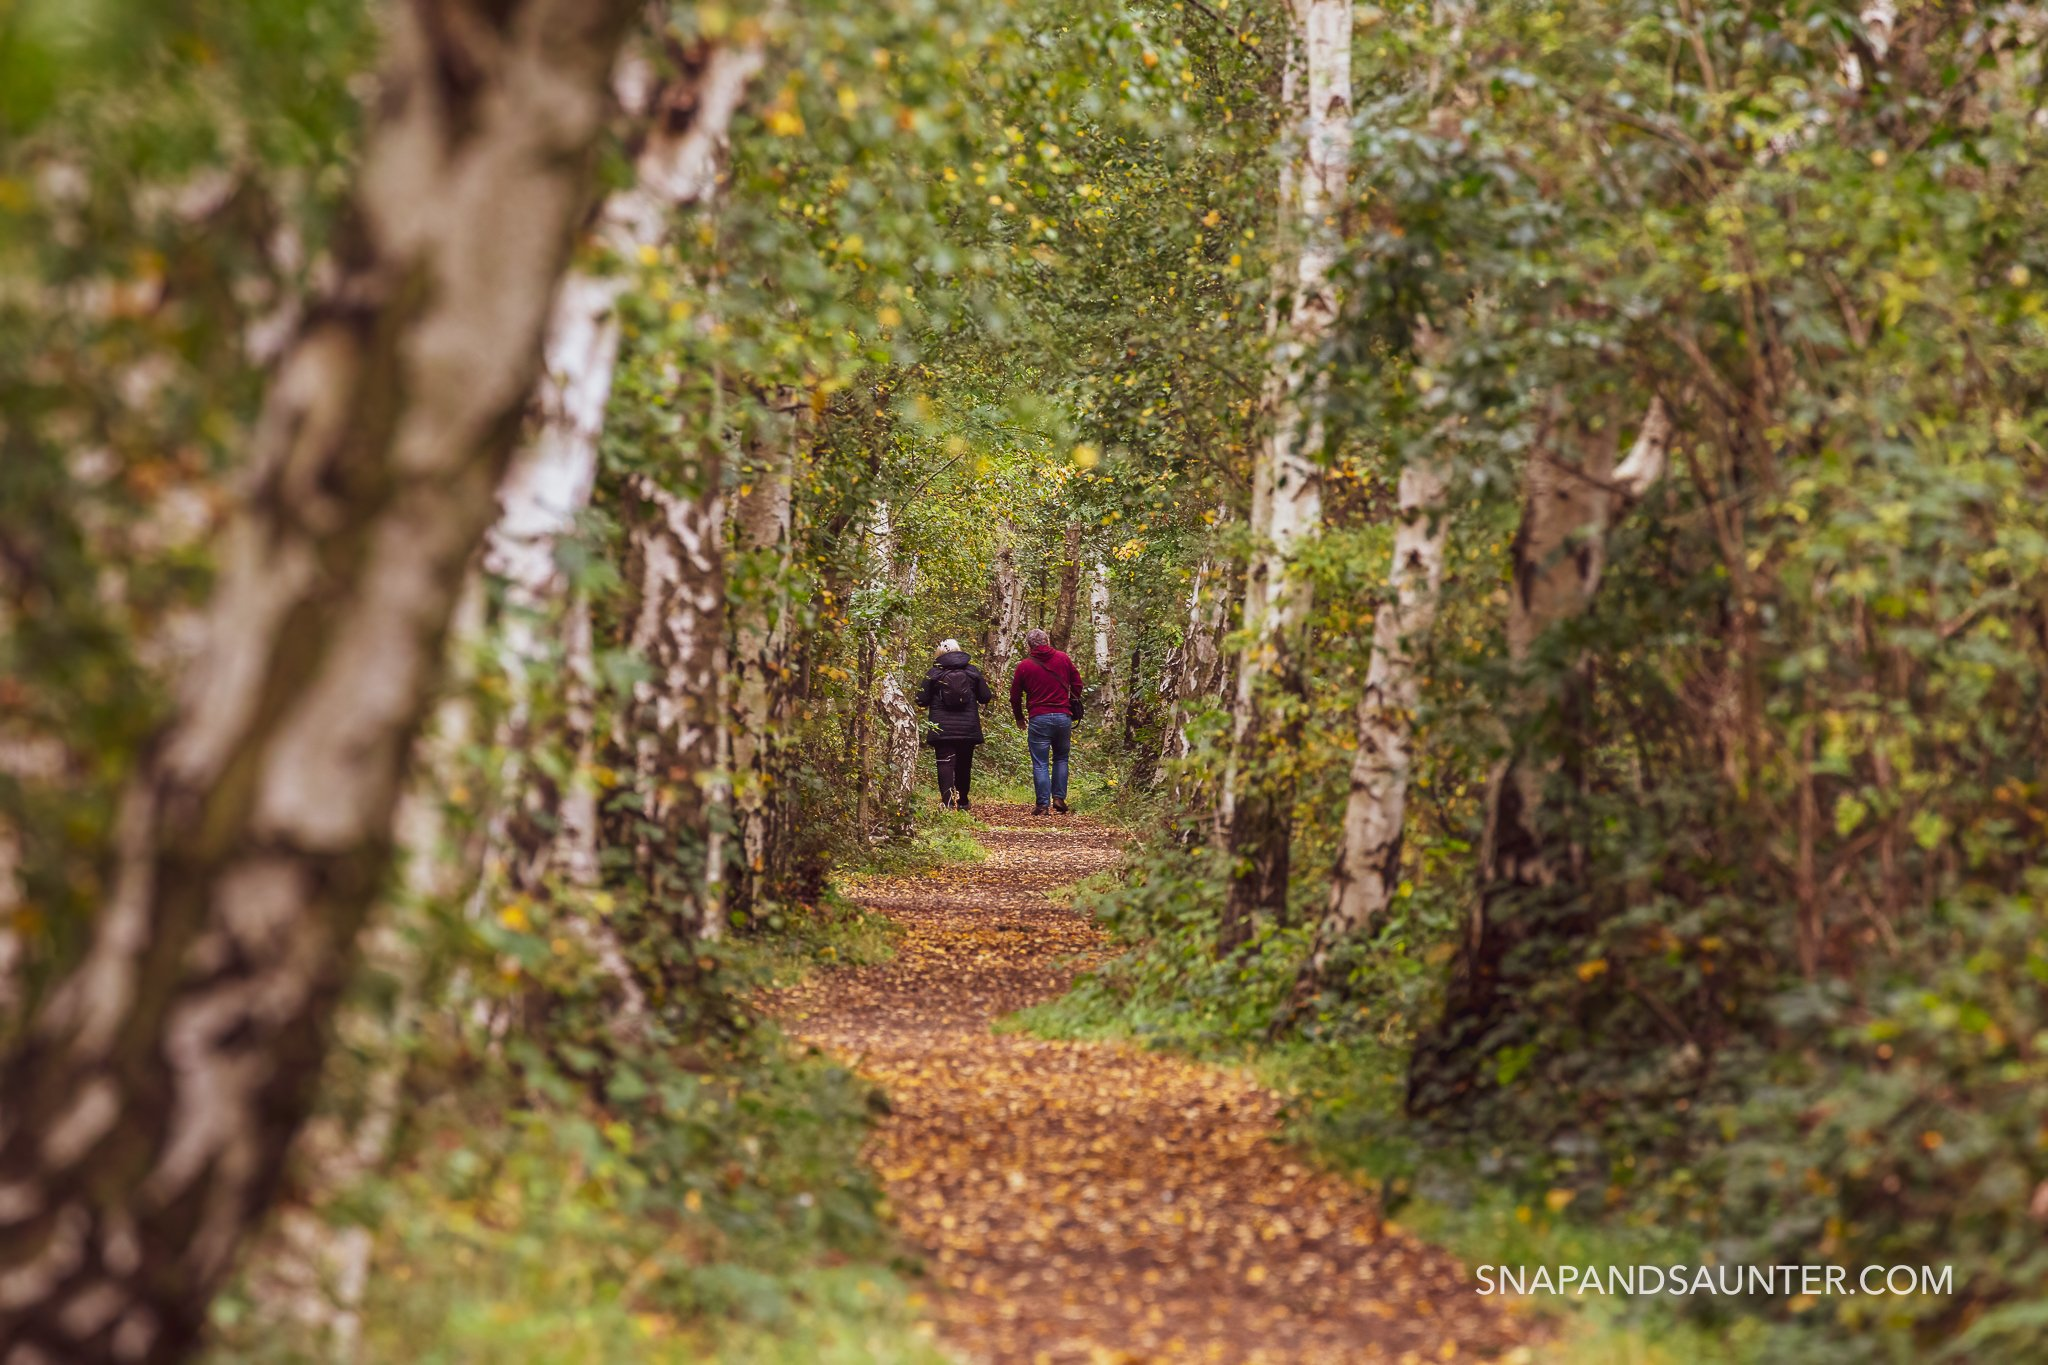 a couple walking through silver birch trees in potteric carr nature reserve in doncaster